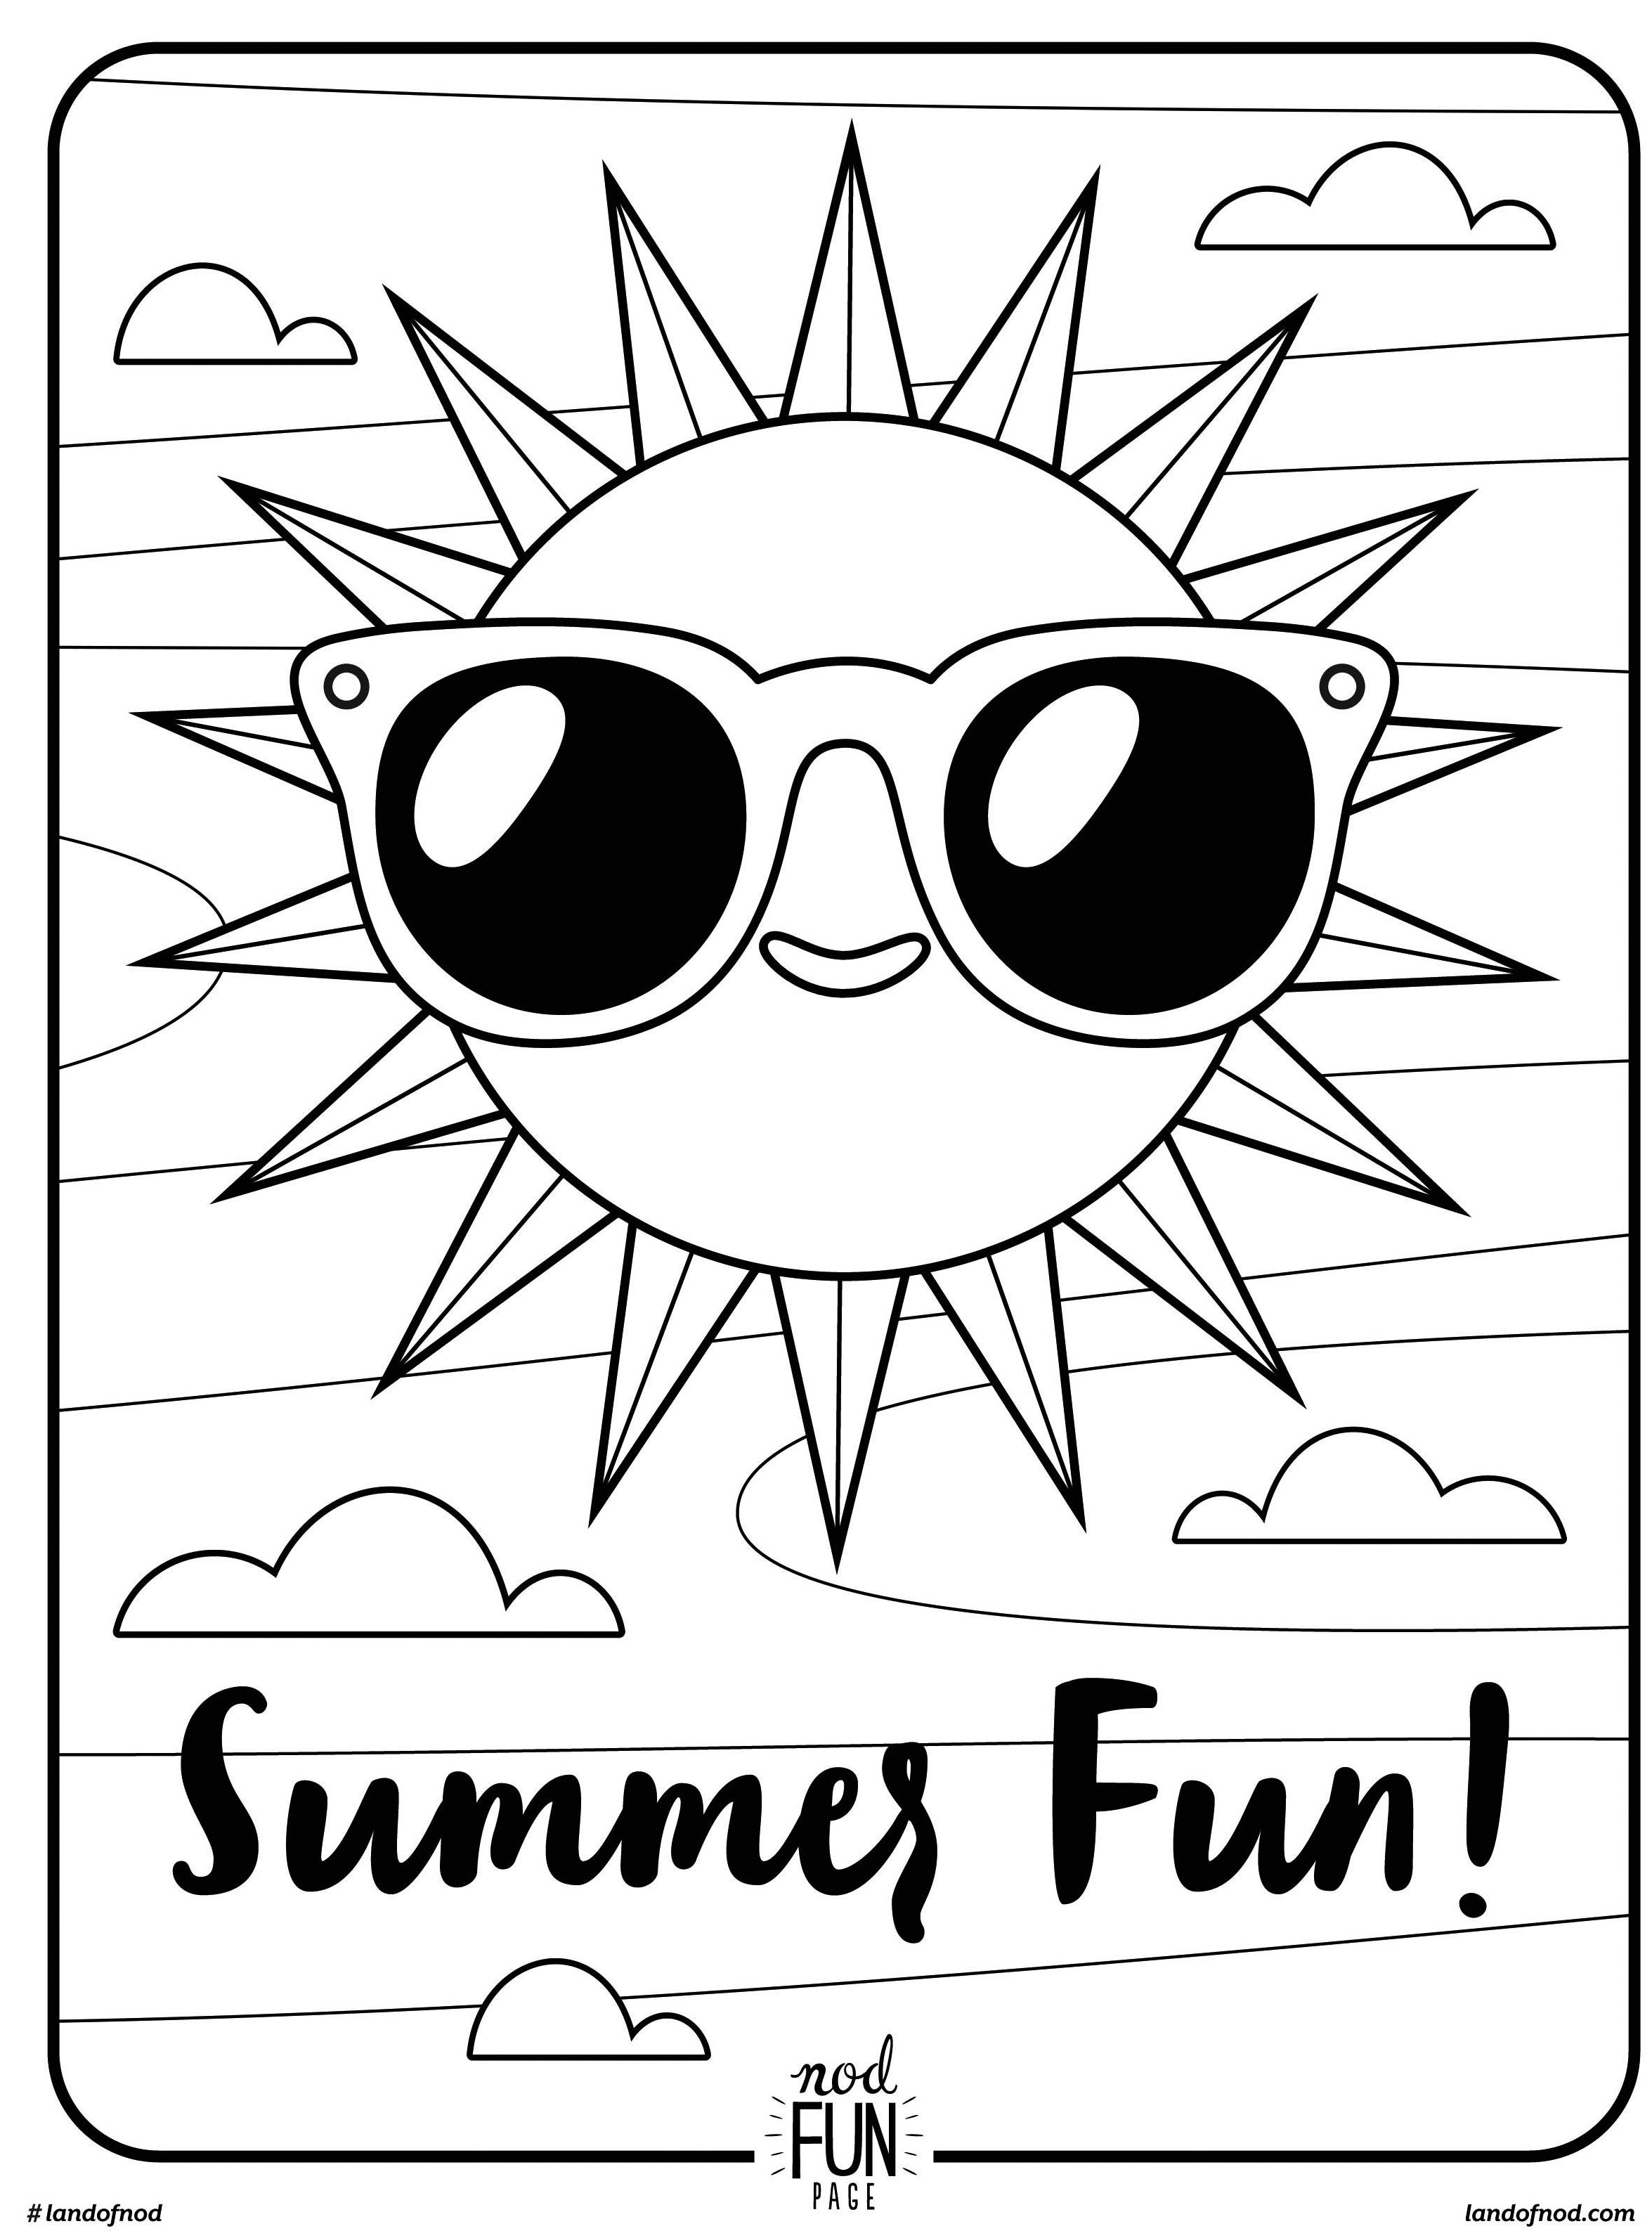 coloring pages for summer download free printable summer coloring pages for kids pages coloring for summer